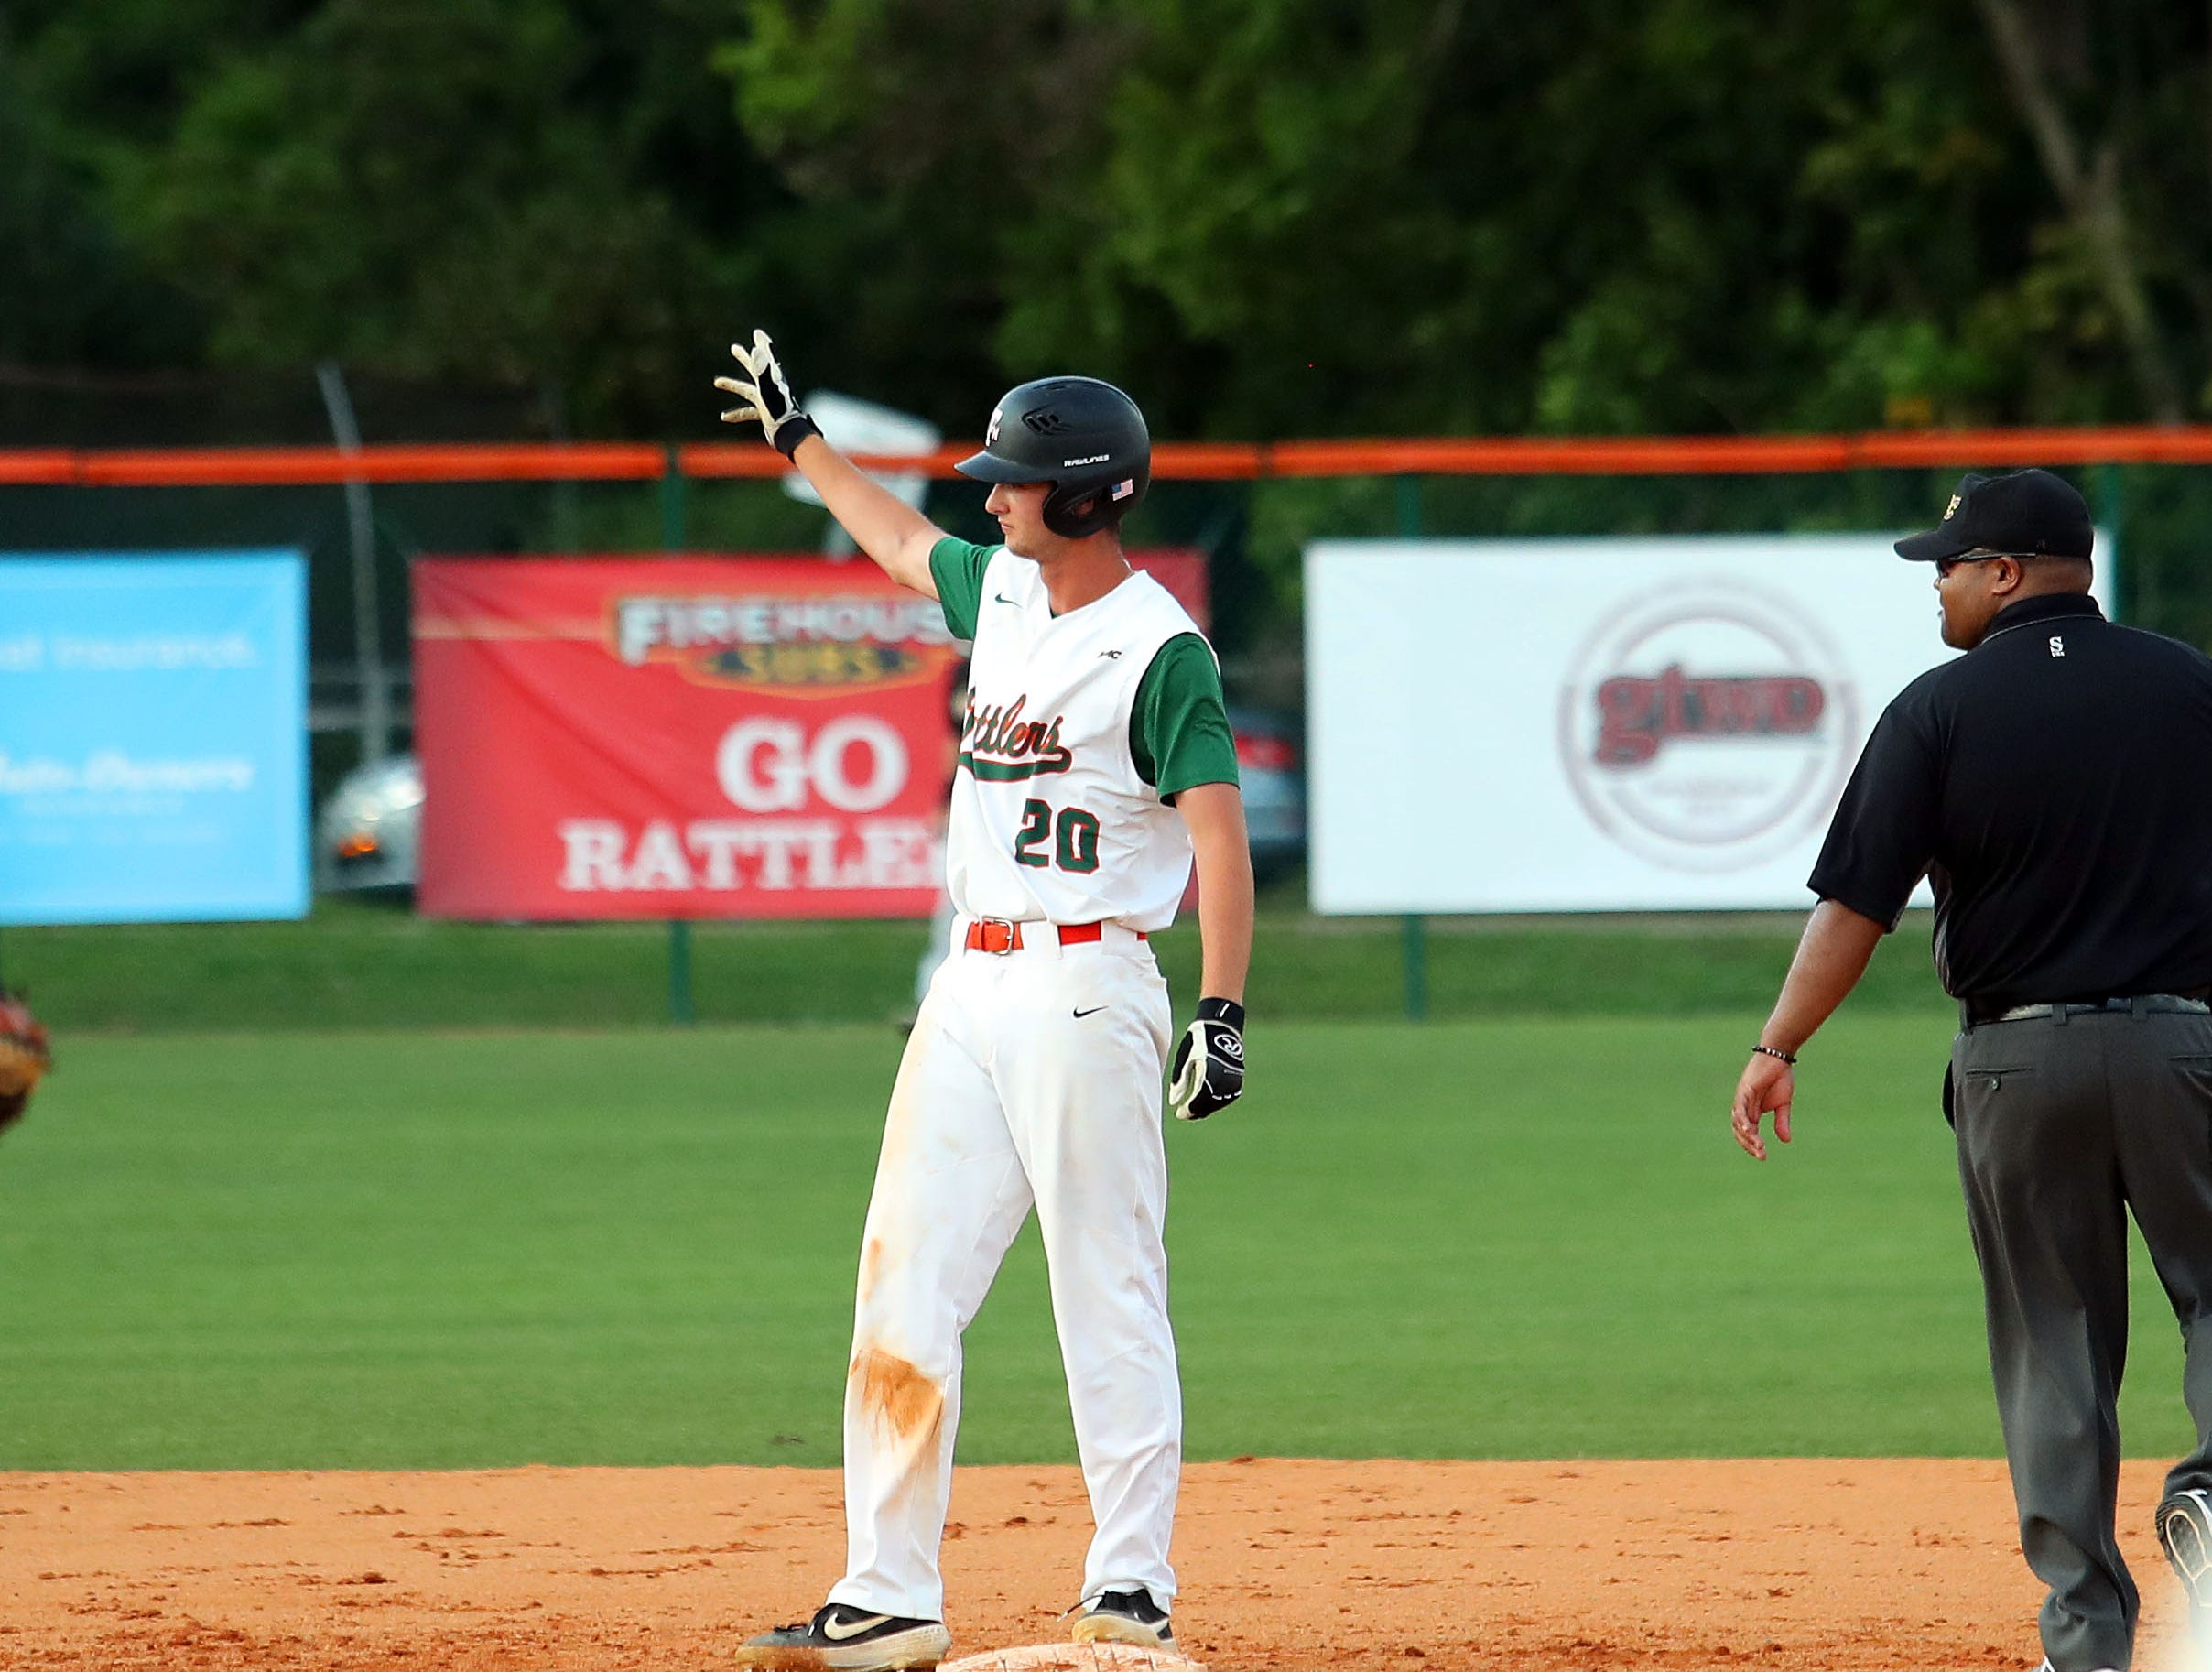 FAMU right fielder Jared Weber celebrates a double in Game 2 of the doubleheader versus B-CU on Saturday, April 13, 2019.